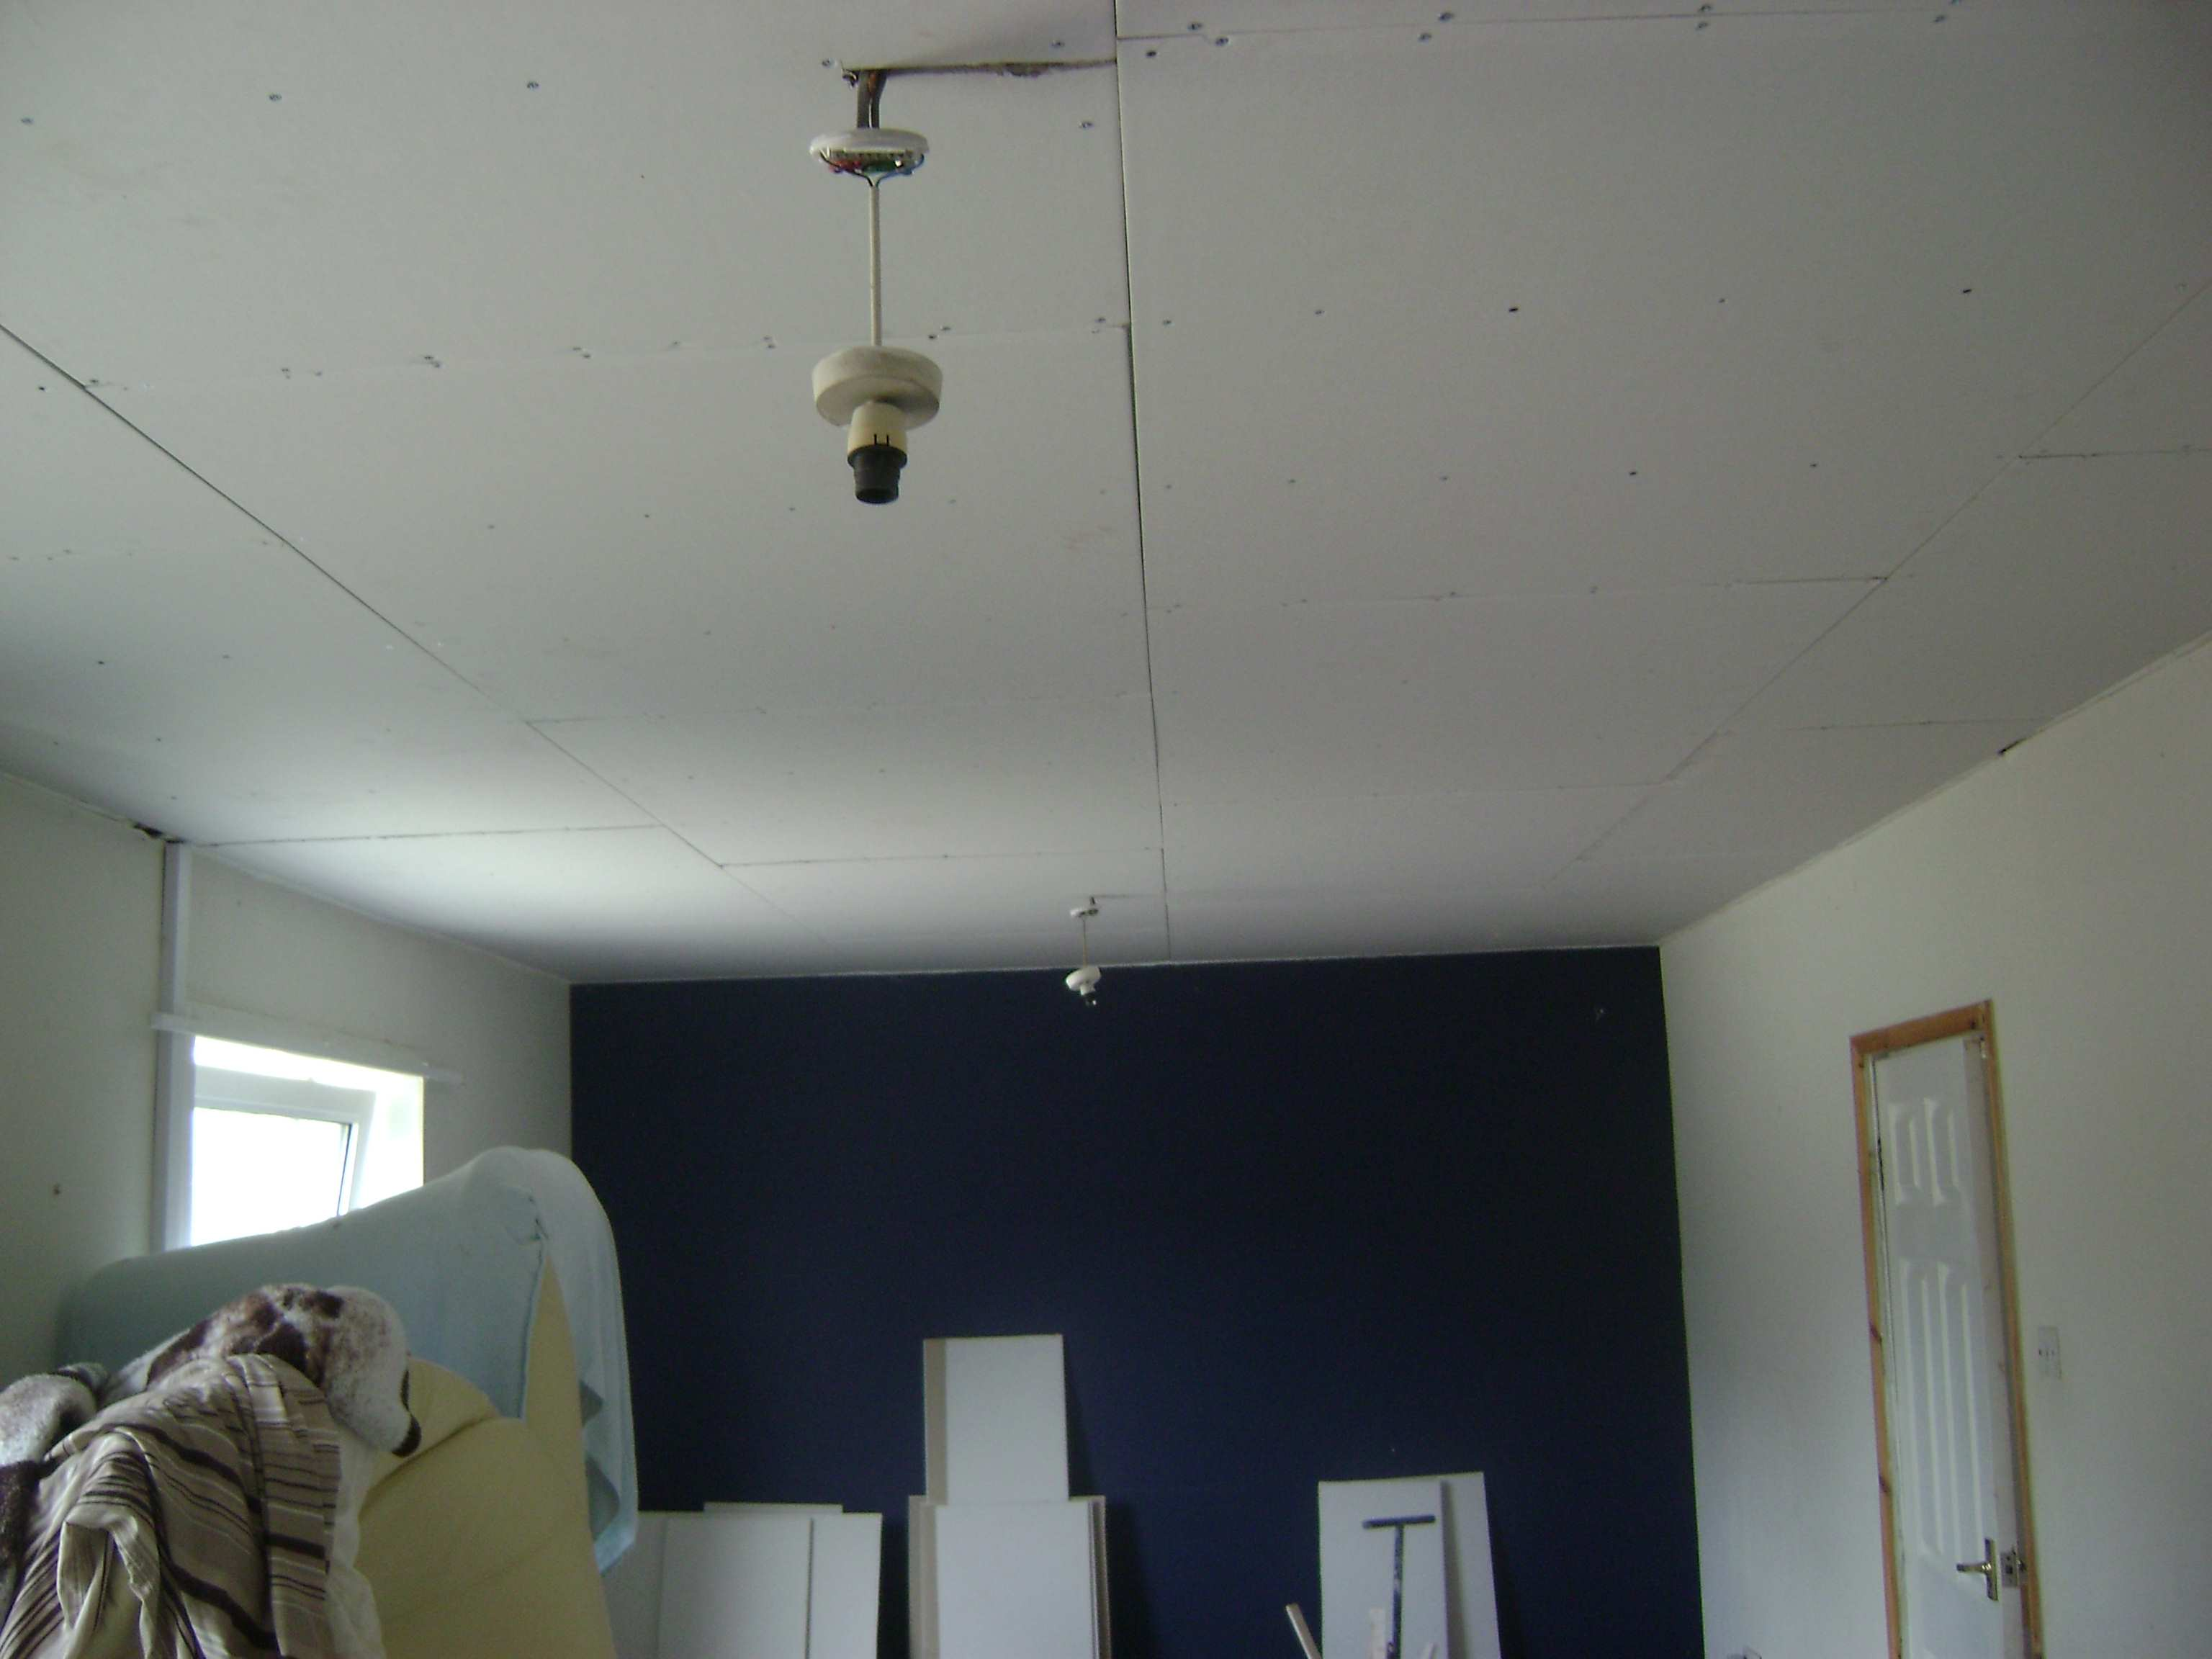 Following removal of the timber battens, the joists were located and the ceiling was overboarded